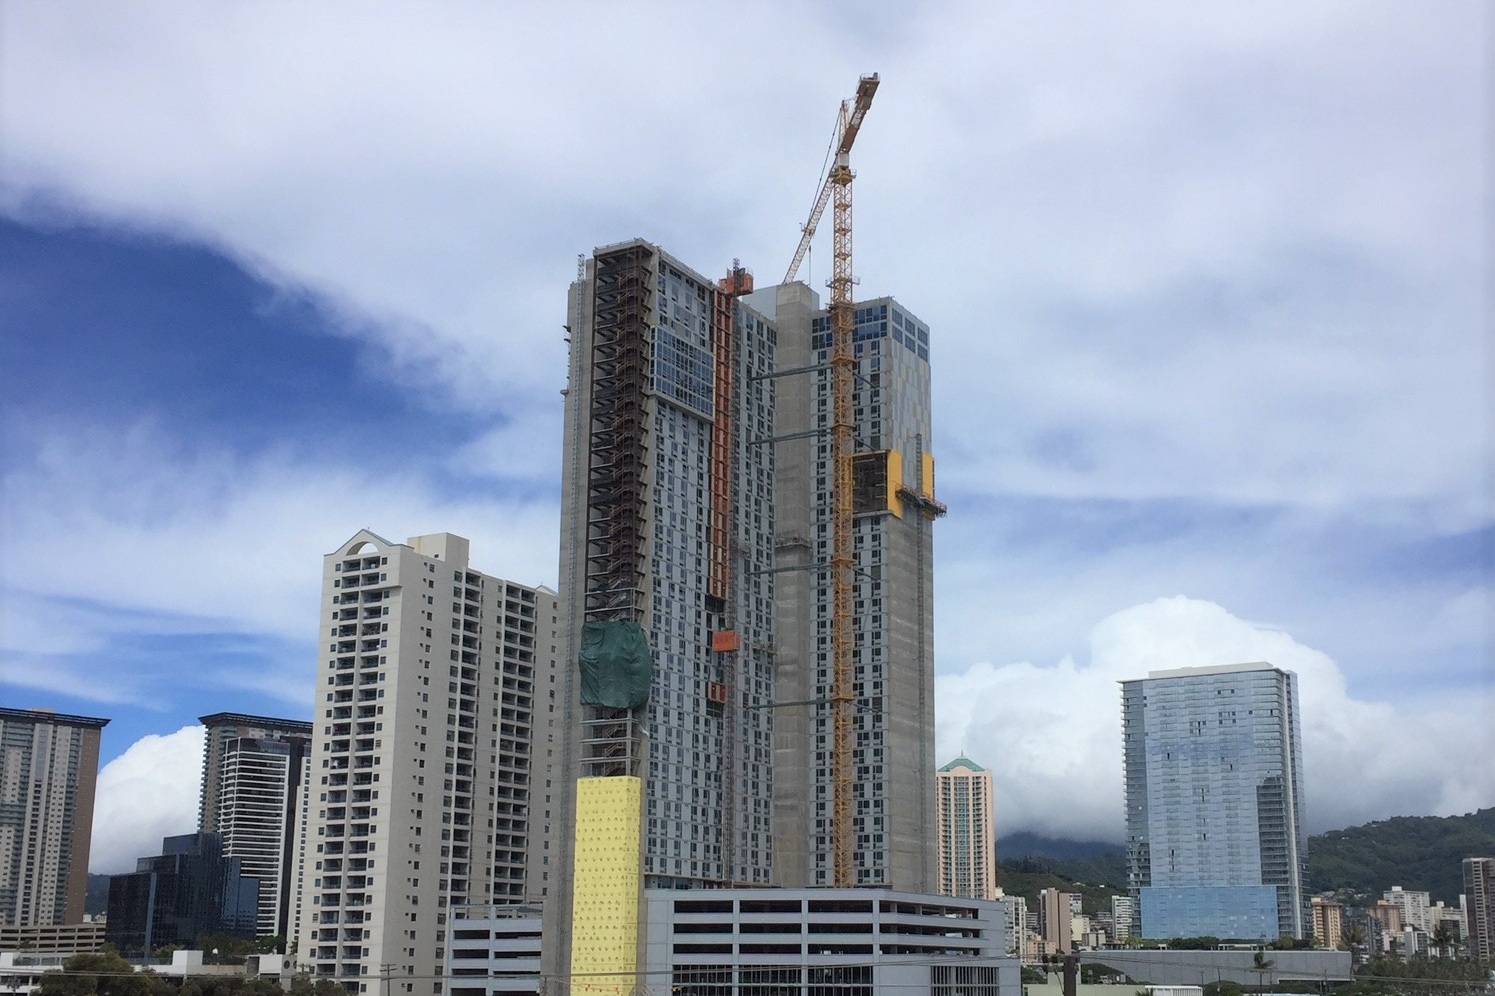 KE KILOHANA AT 988 HALEKAUWILA - Honolulu, Oahu, HIForty-three story reinforced concrete building with post-tensioned slabs and concrete shear walls for 425 apartment units. Also includes a recreation area on Level 8 over six levels of parking and one ground level of retail, totaling approximately 746,000 square feet.Developer: HOWARD HUGHESContractor: NORDIC PCLArchitect: CDS INTERNATIONAL